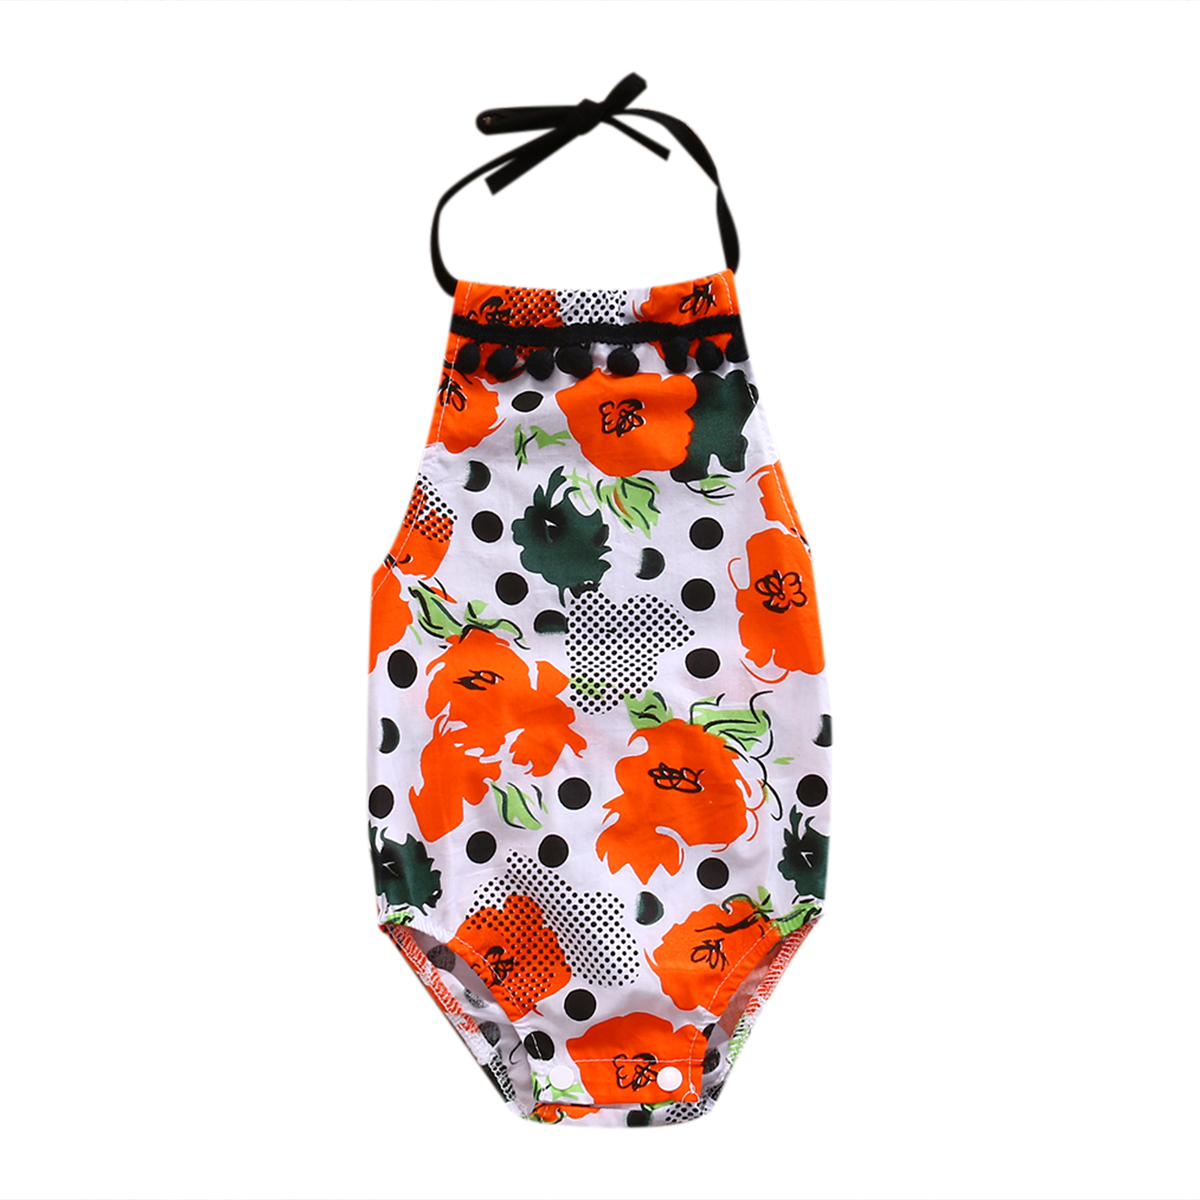 Newborn Infant Baby Girl Floral Romper Jumpsuit Cotton Summer Outfits One-Pieces Clothes